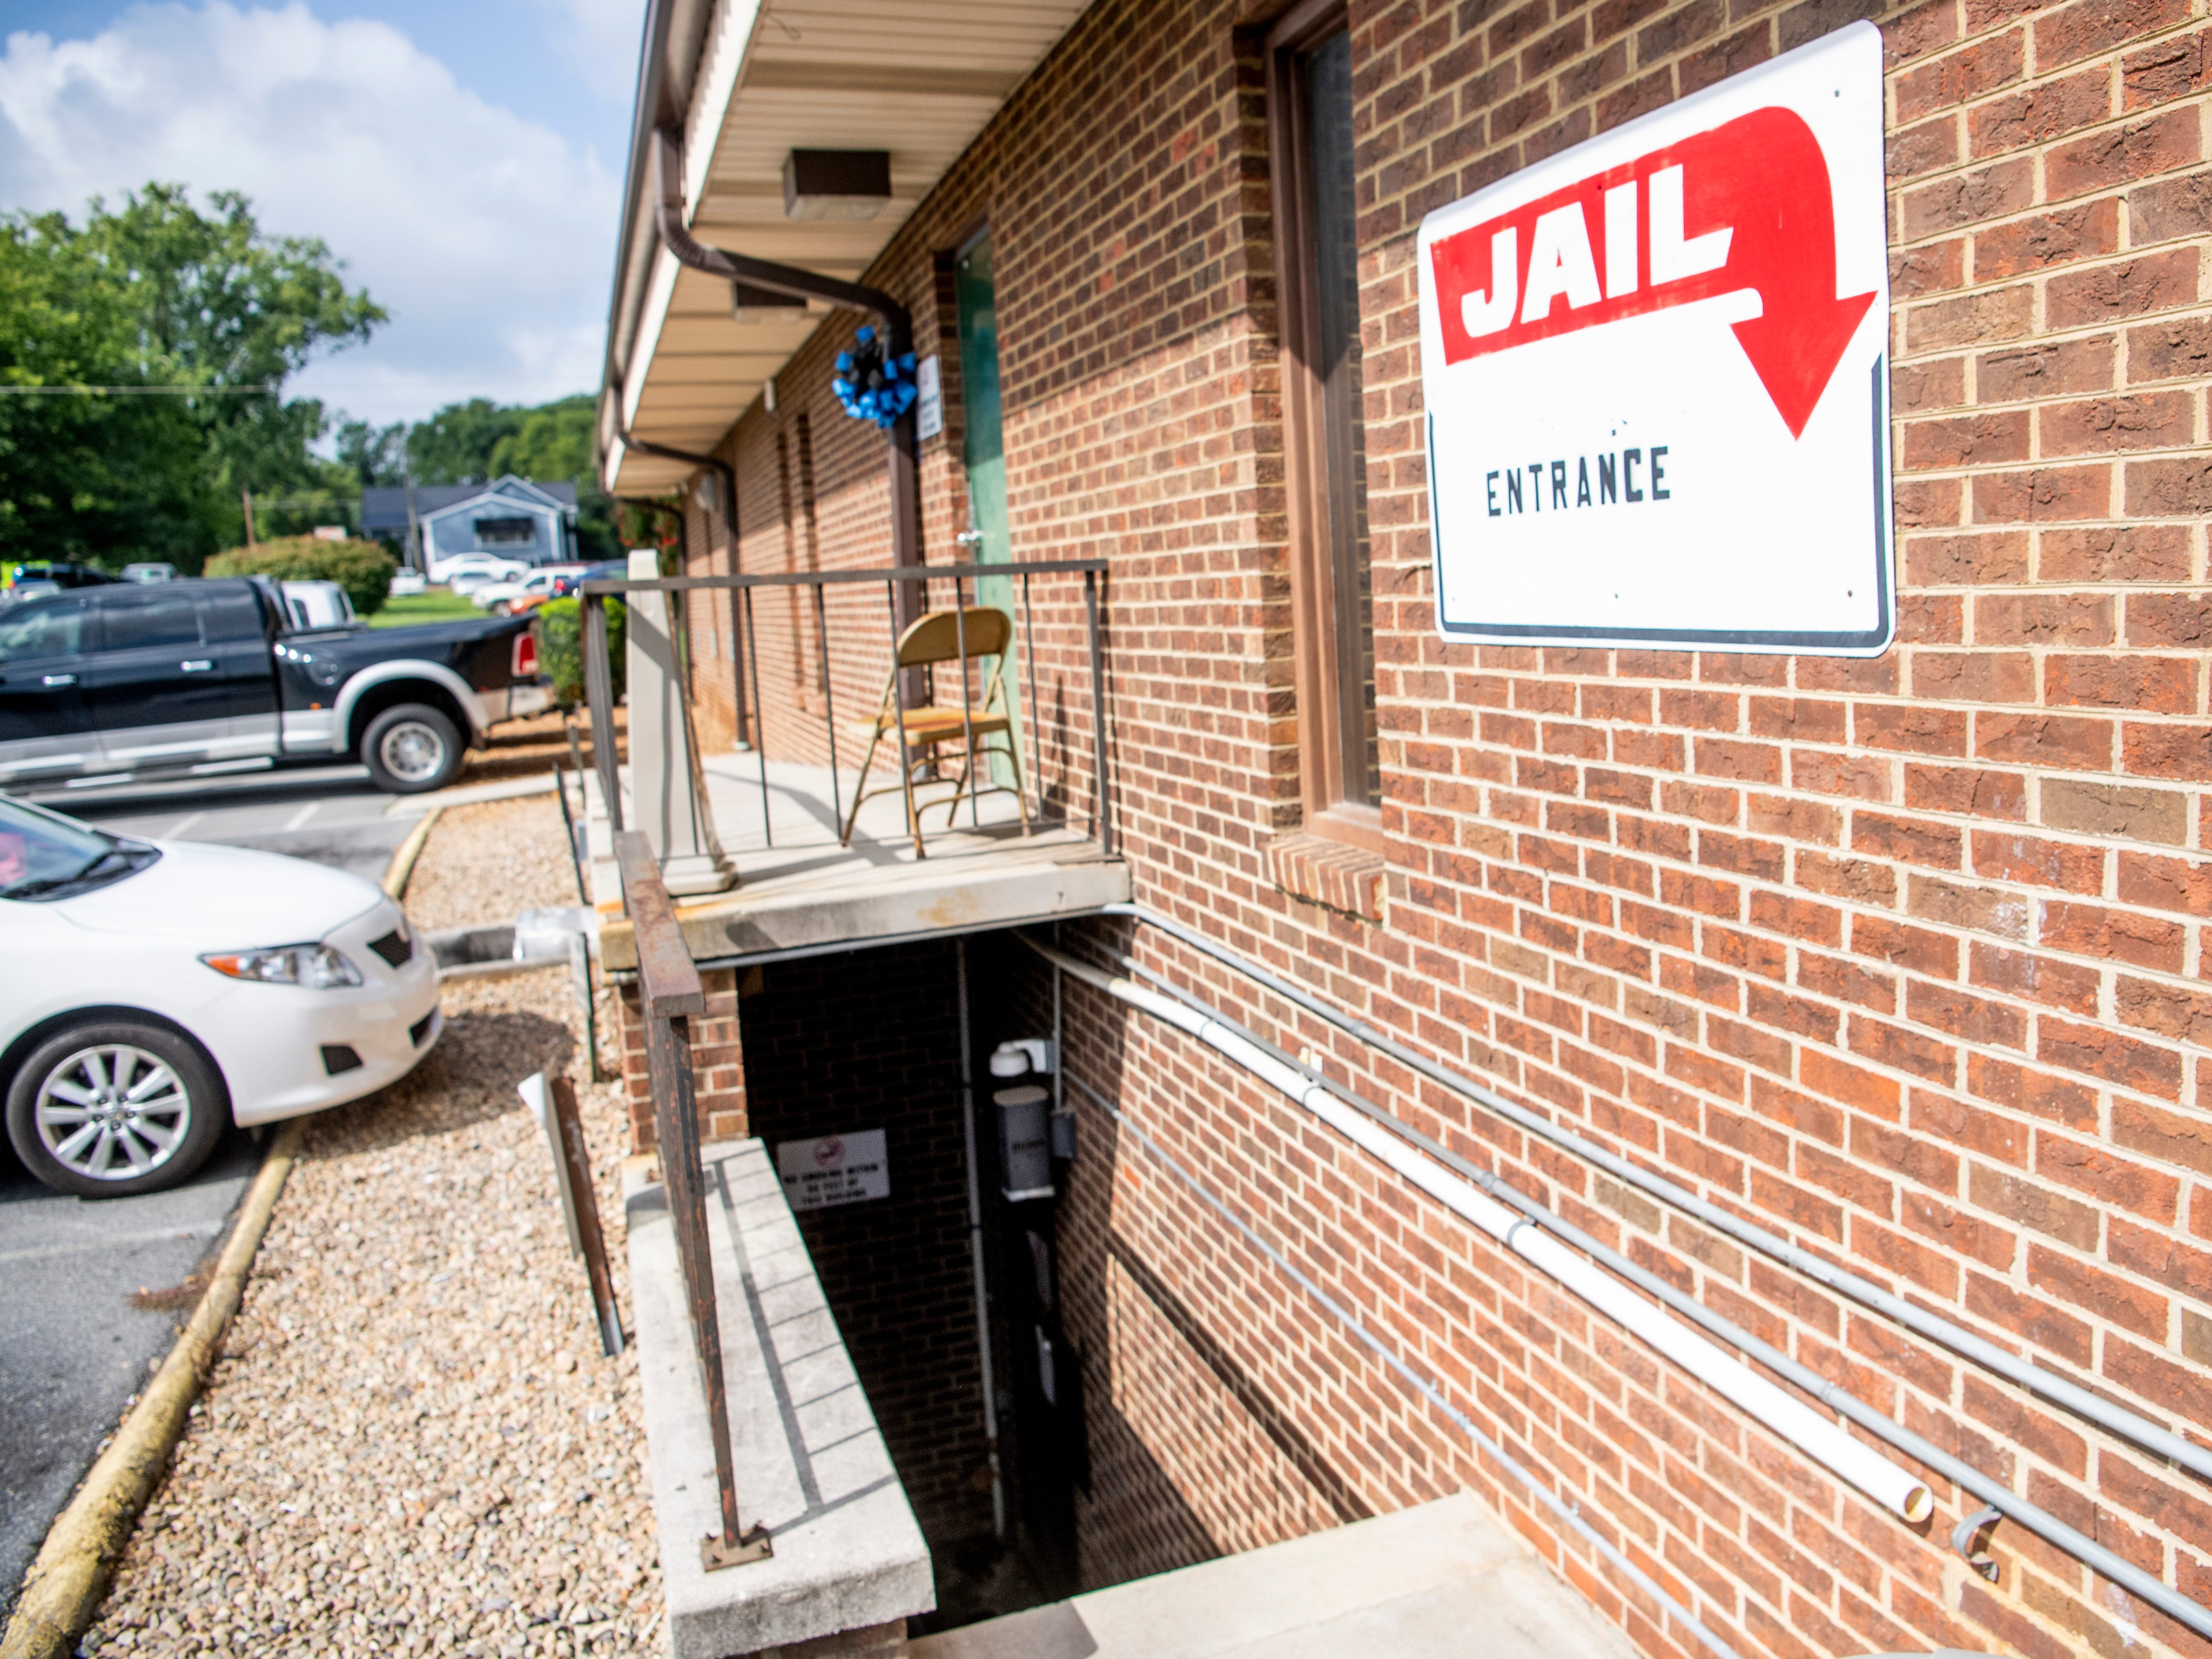 """Hamblen County Sheriff Esco Jarnigan called his county's own jail """"a dungeon,"""" and it was once featured in the New York Times as one of the worst jails in America."""